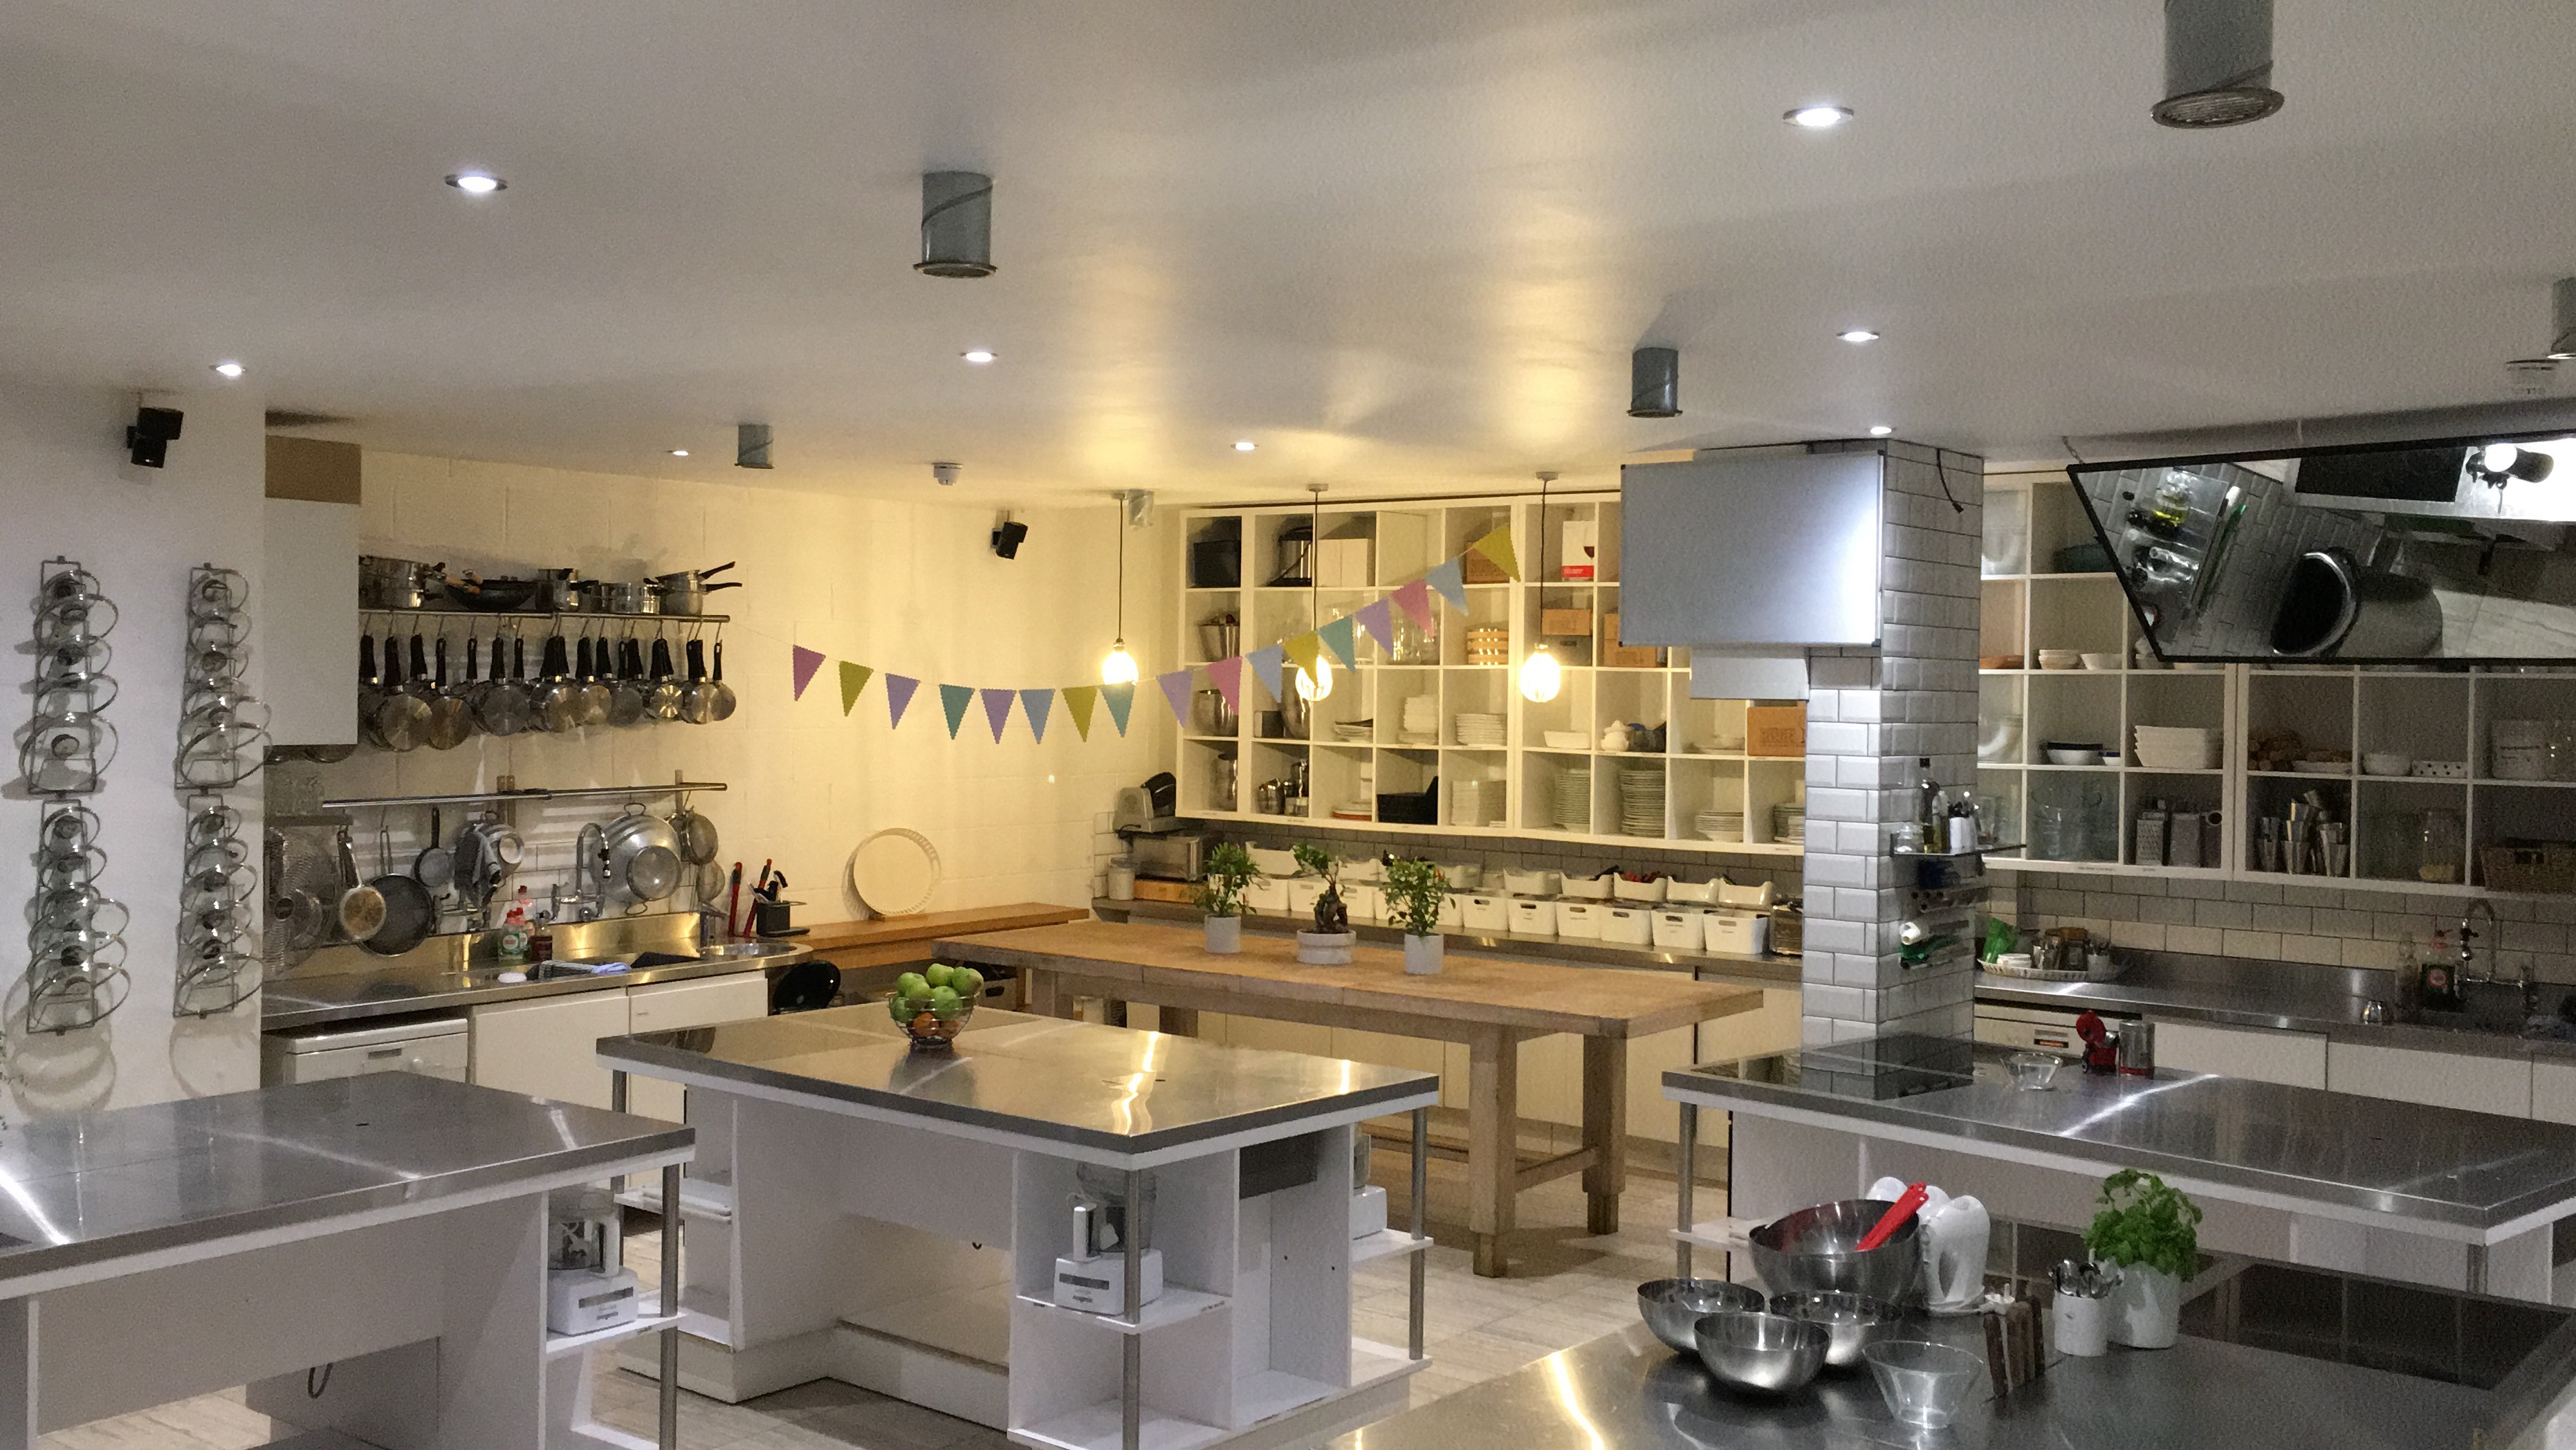 Prepare for Uni Cooking Course by The Avenue Cookery School - food in London